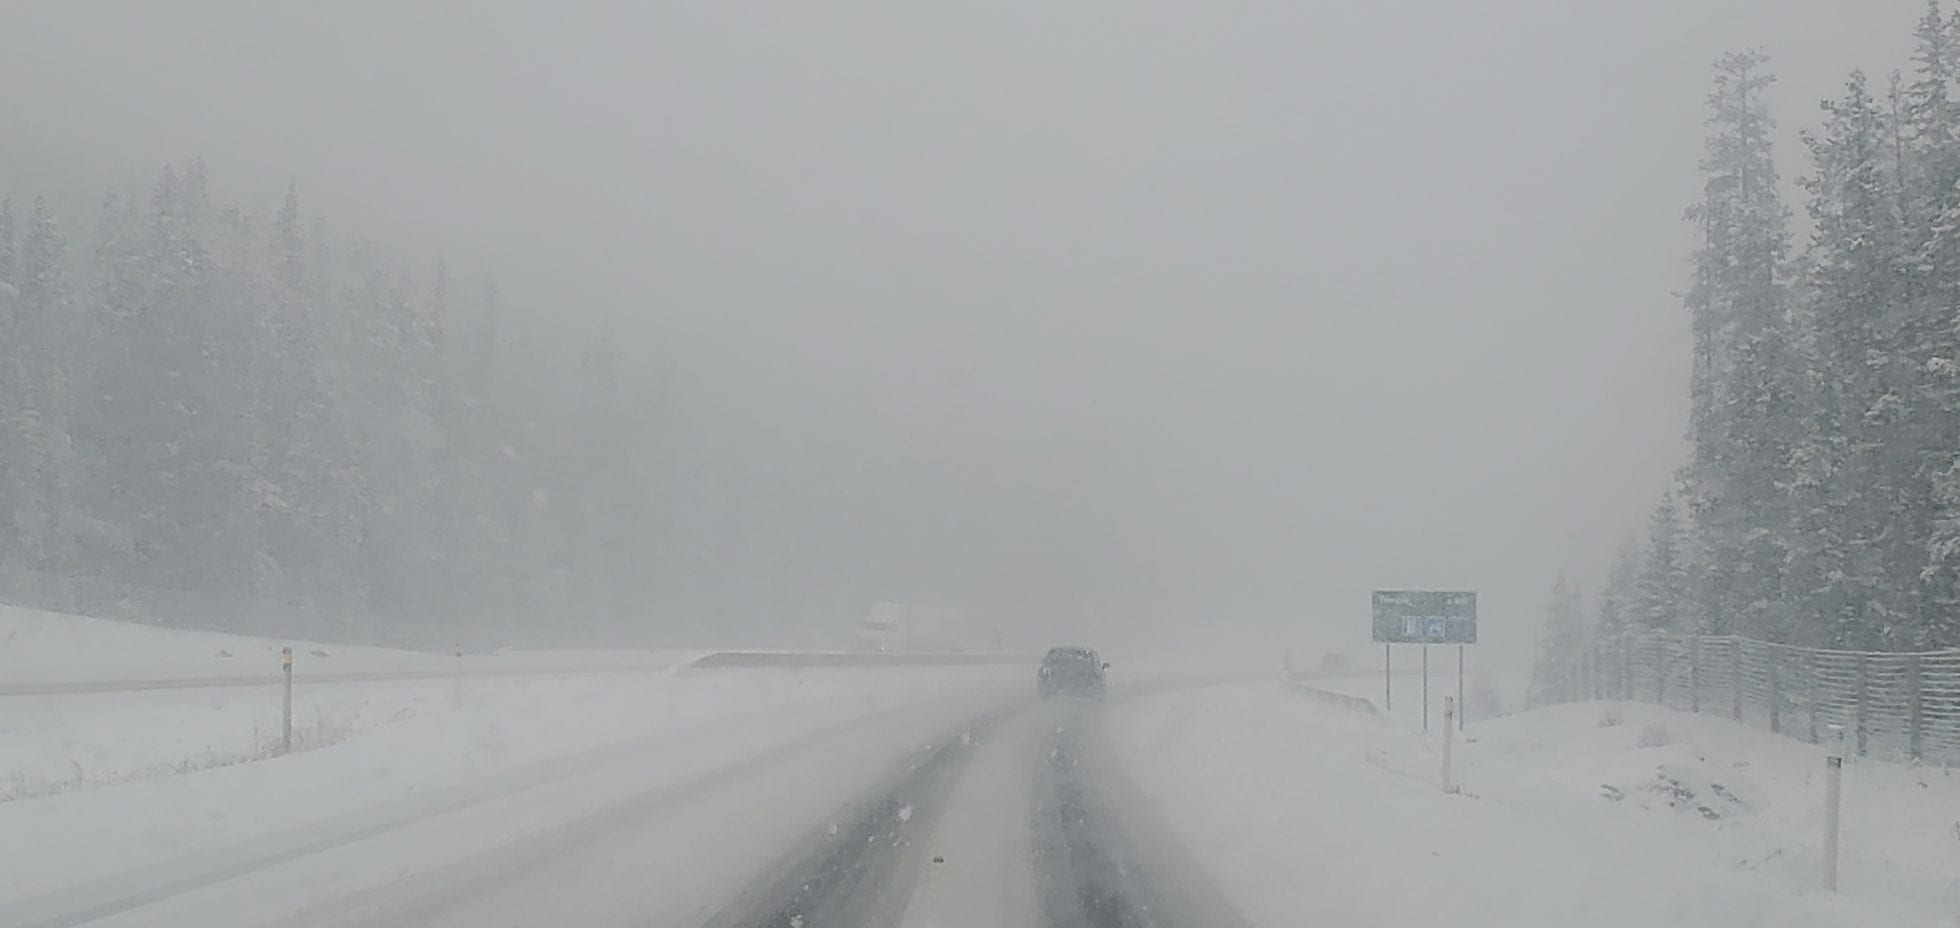 Snowstorm With Poor Visibility